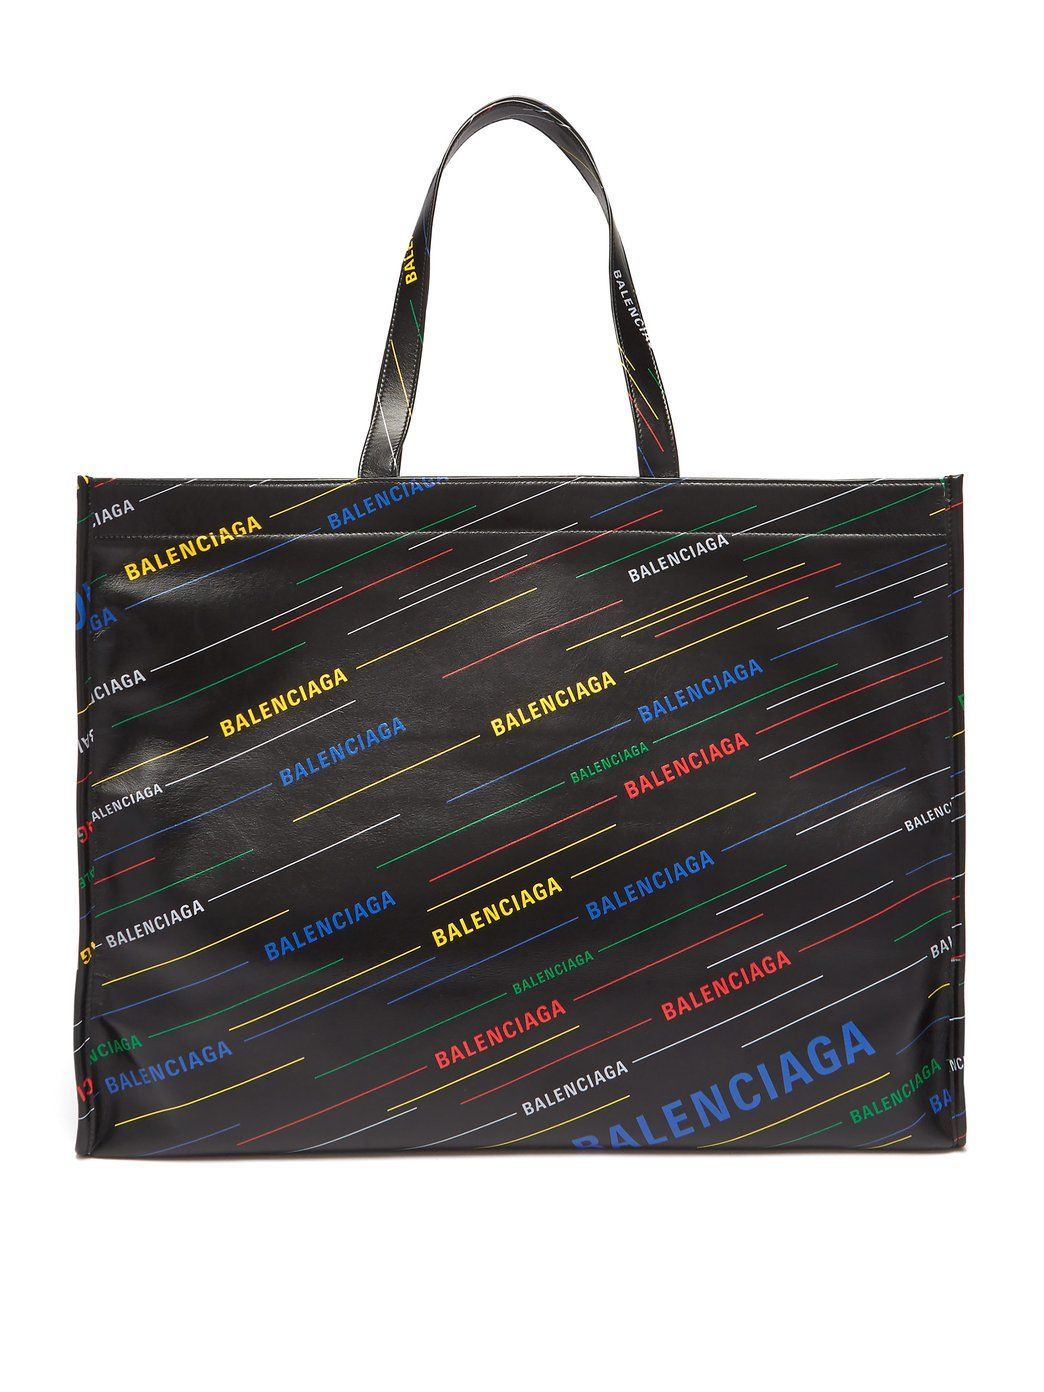 balenciaga-market-shopper-multicolored-logo-print-leather-tote